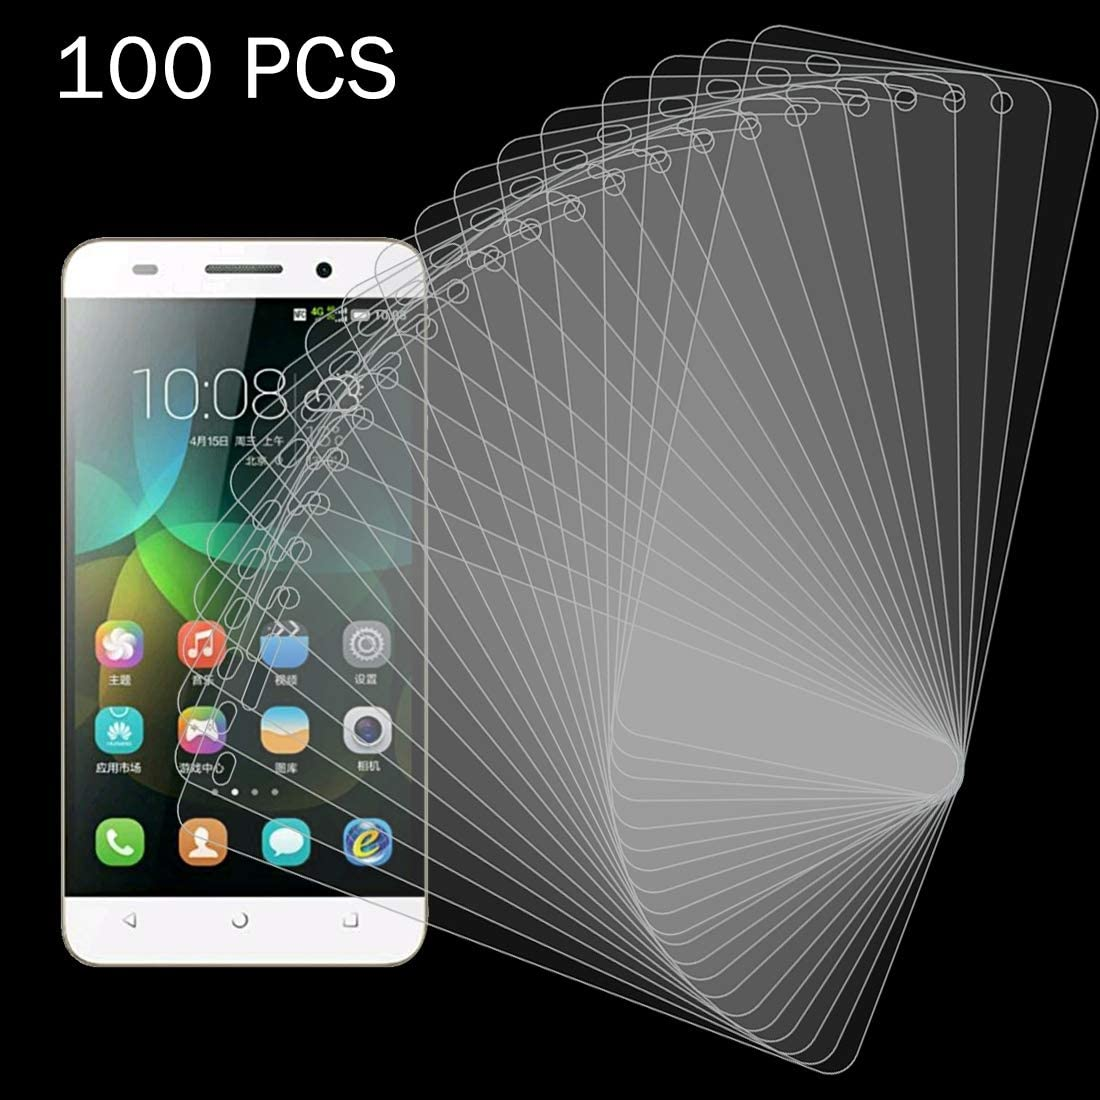 Wangl Mobile Phone Tempered Glass Film 100 PCS for Huawei Honor 4C 0.26mm 9H Surface Hardness 2.5D Explosion-Proof Tempered Glass Screen Film Tempered Glass Film